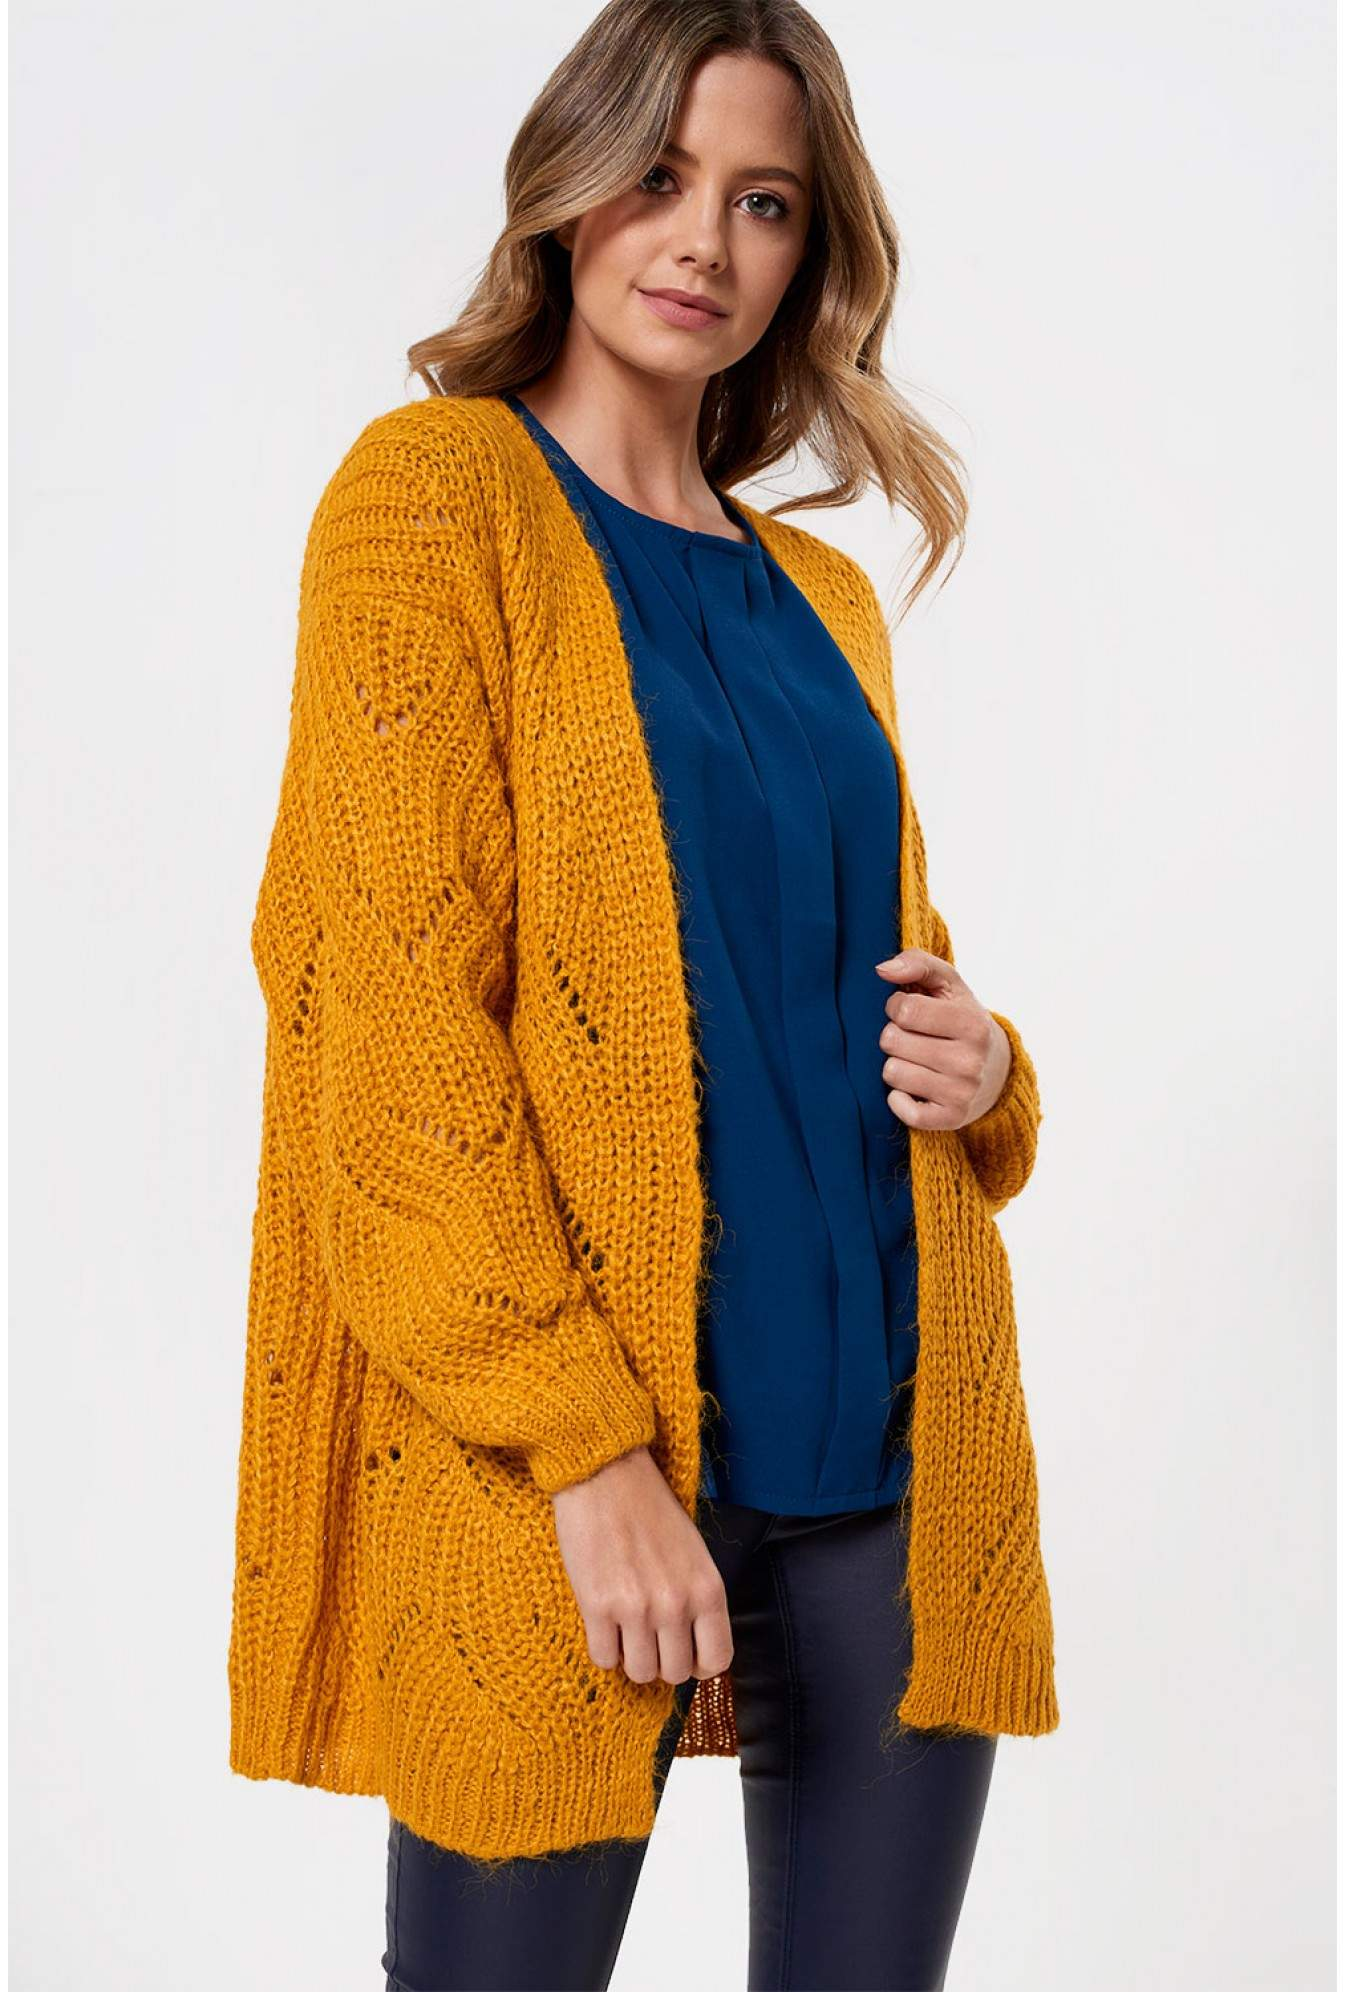 dcc9aa3ecb39 Only Havana Knitted Cardigan in Mustard | iCLOTHING